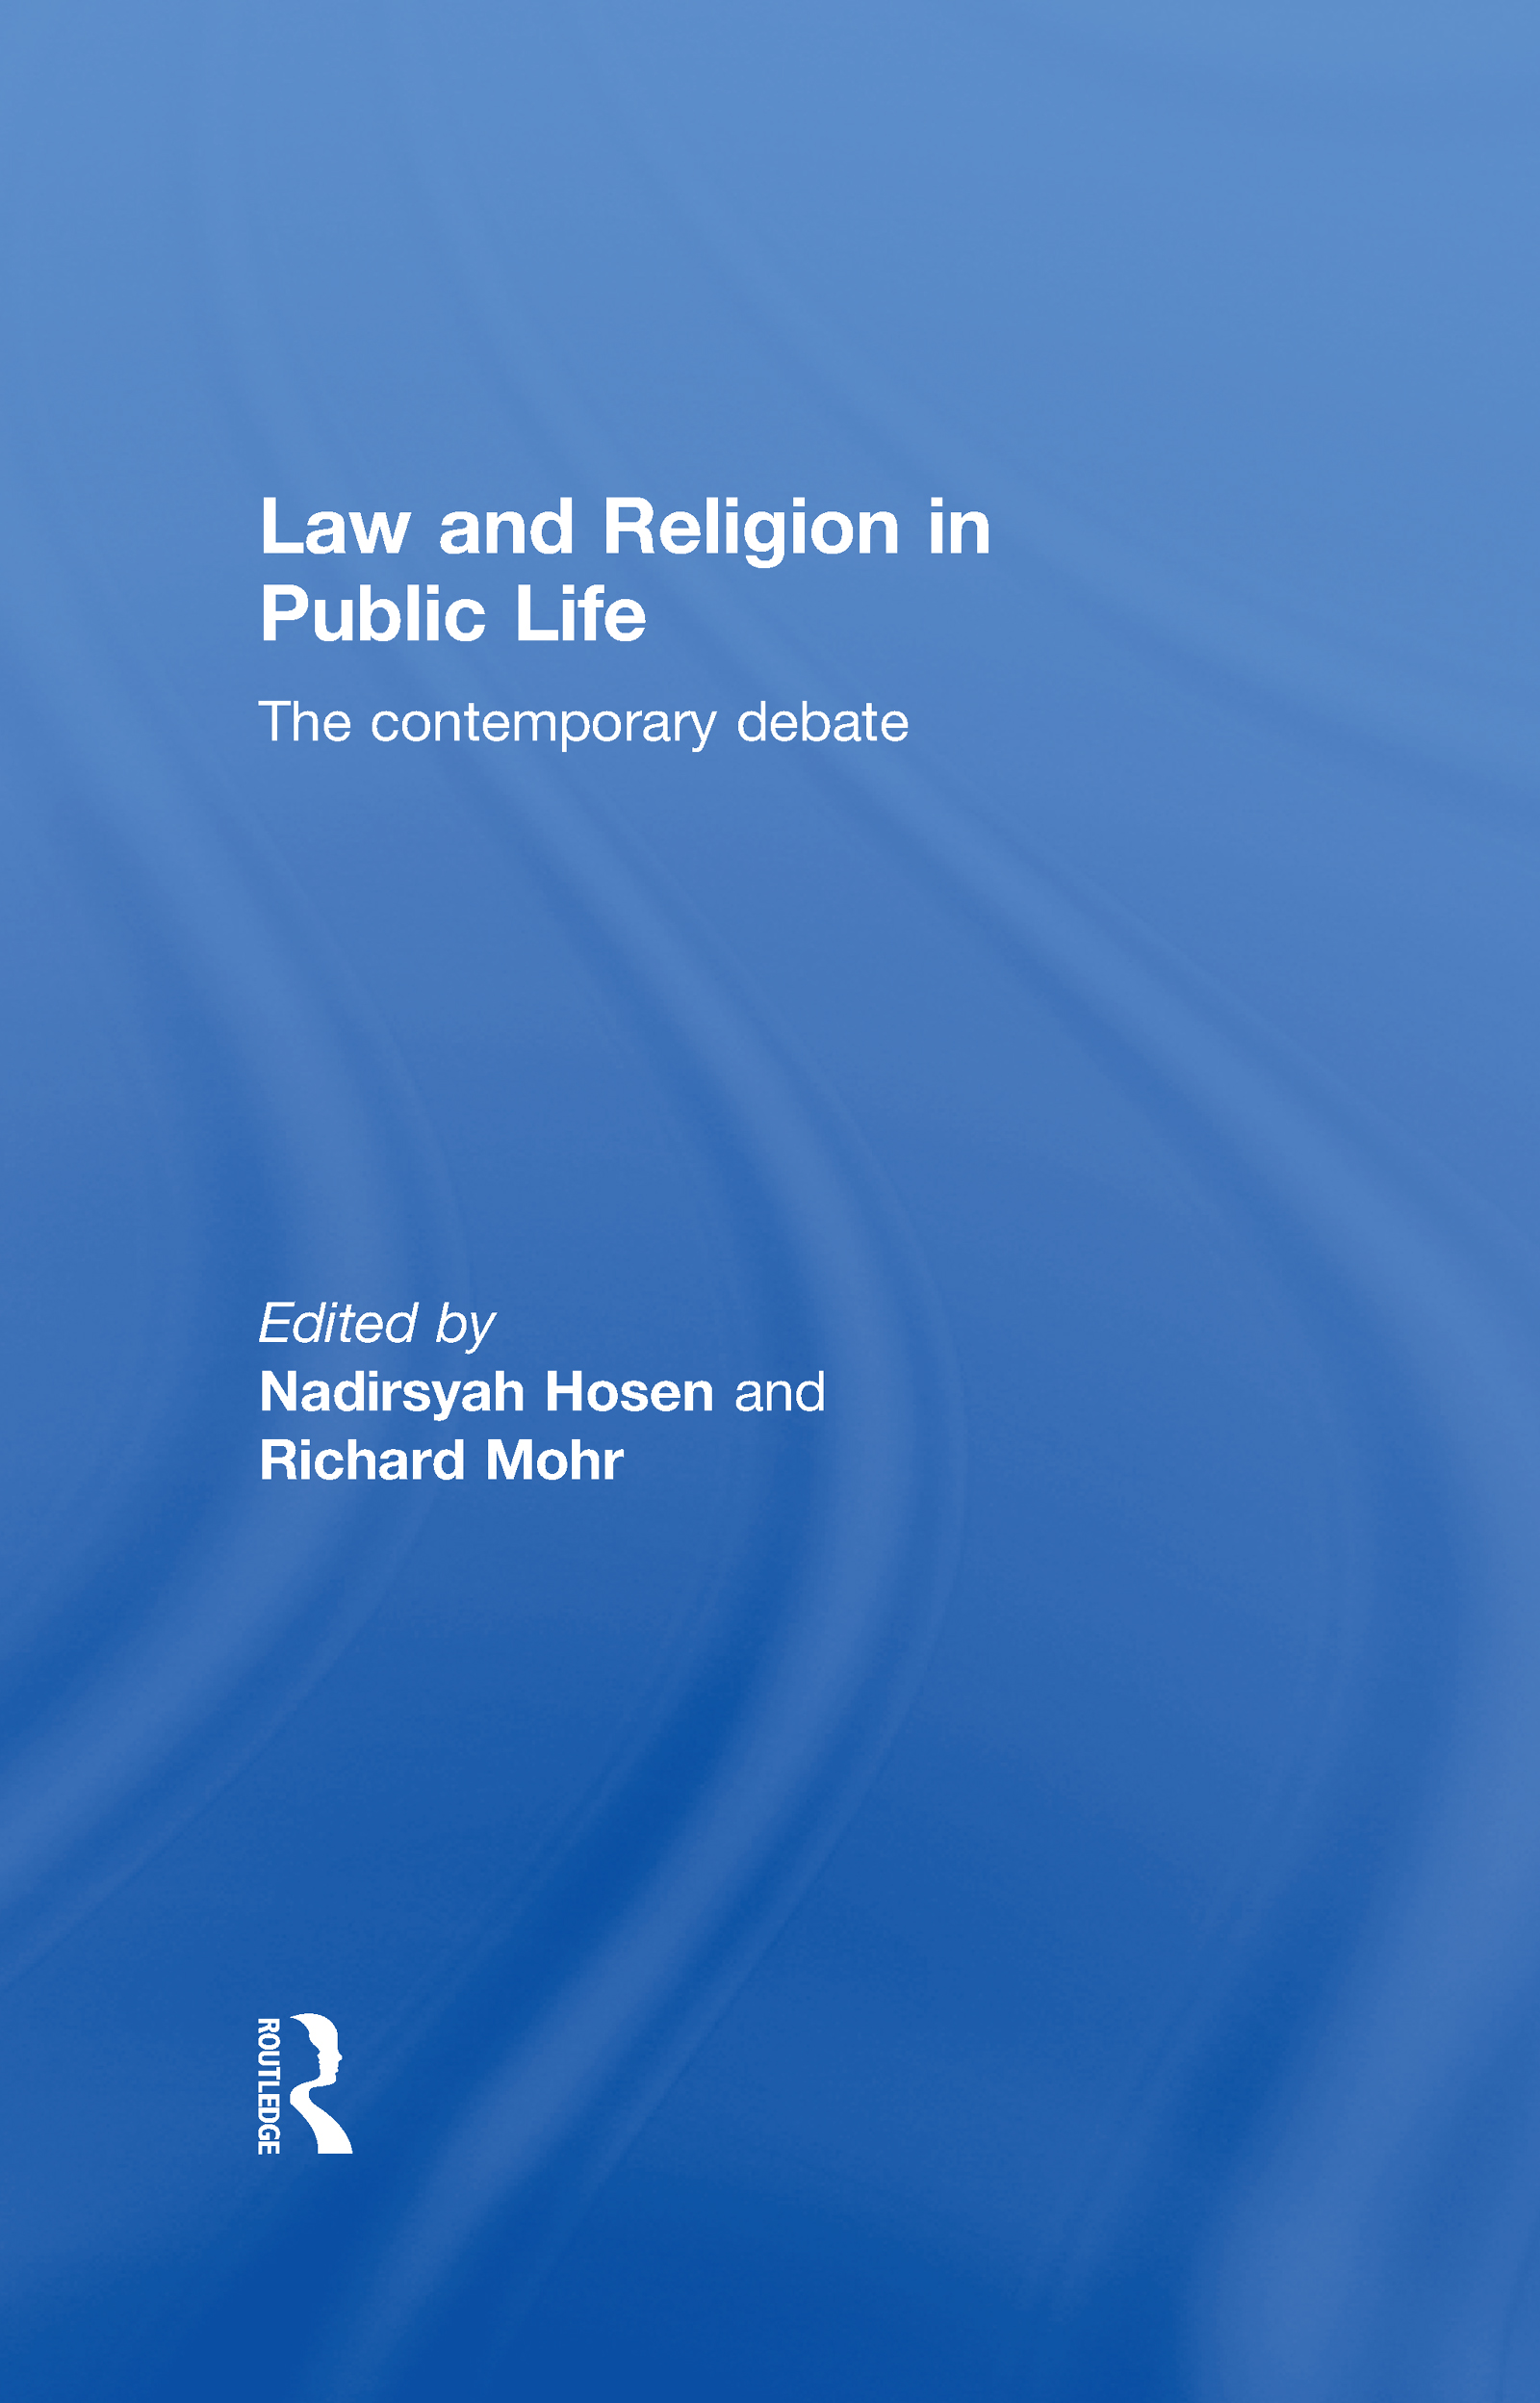 Law and Religion in Public Life